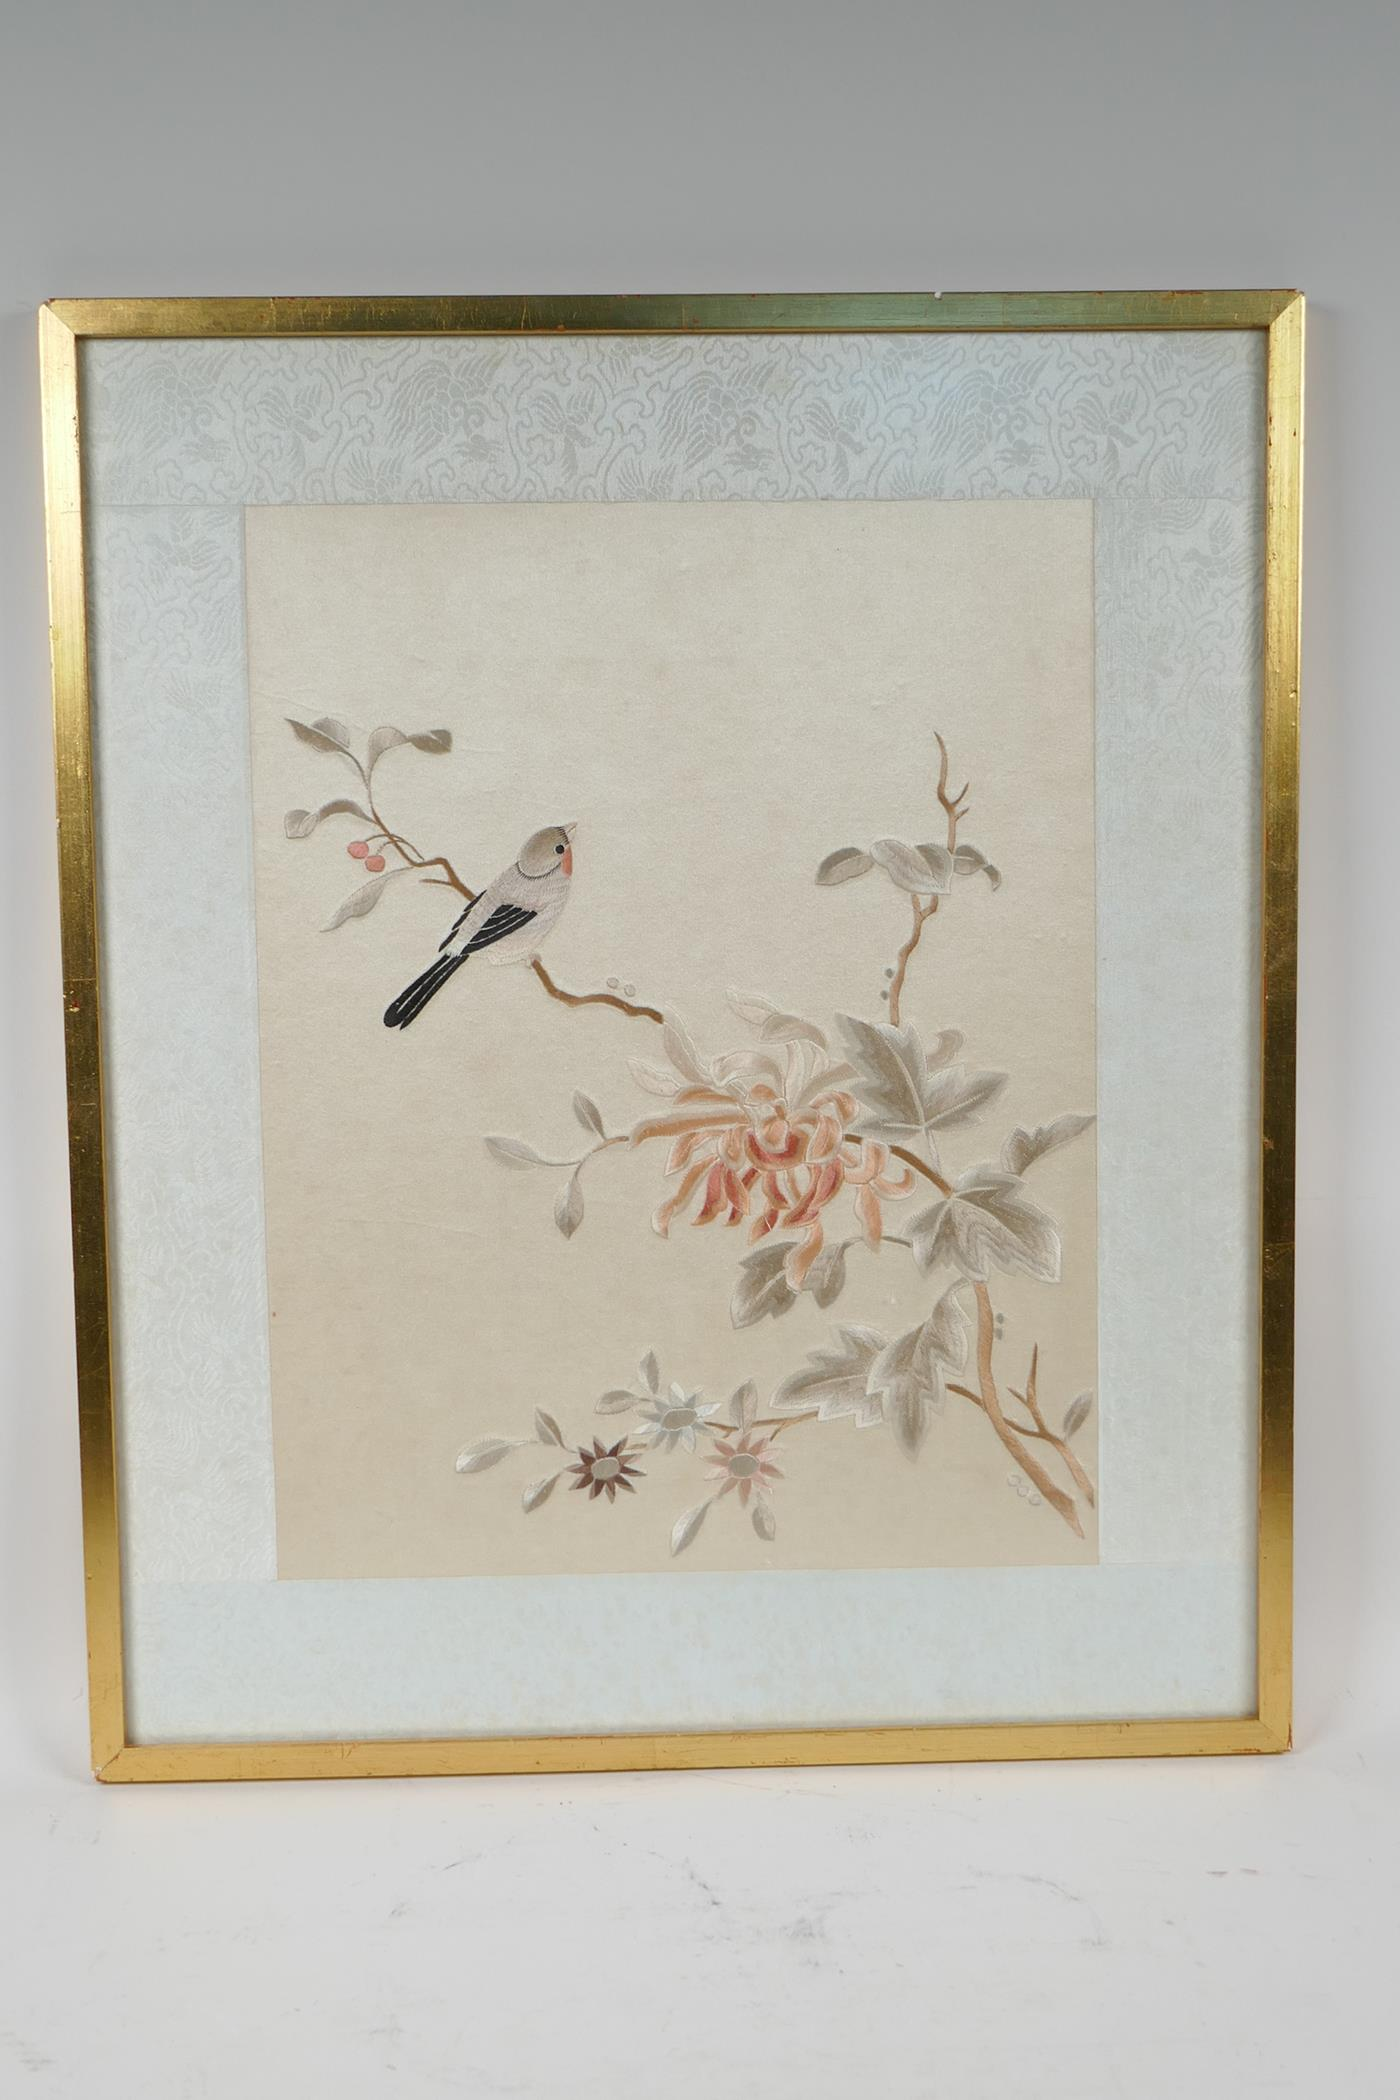 """A Chinese silk embroidery depicting birds on a branch in bloom, 10½"""" x 13"""" - Image 2 of 2"""